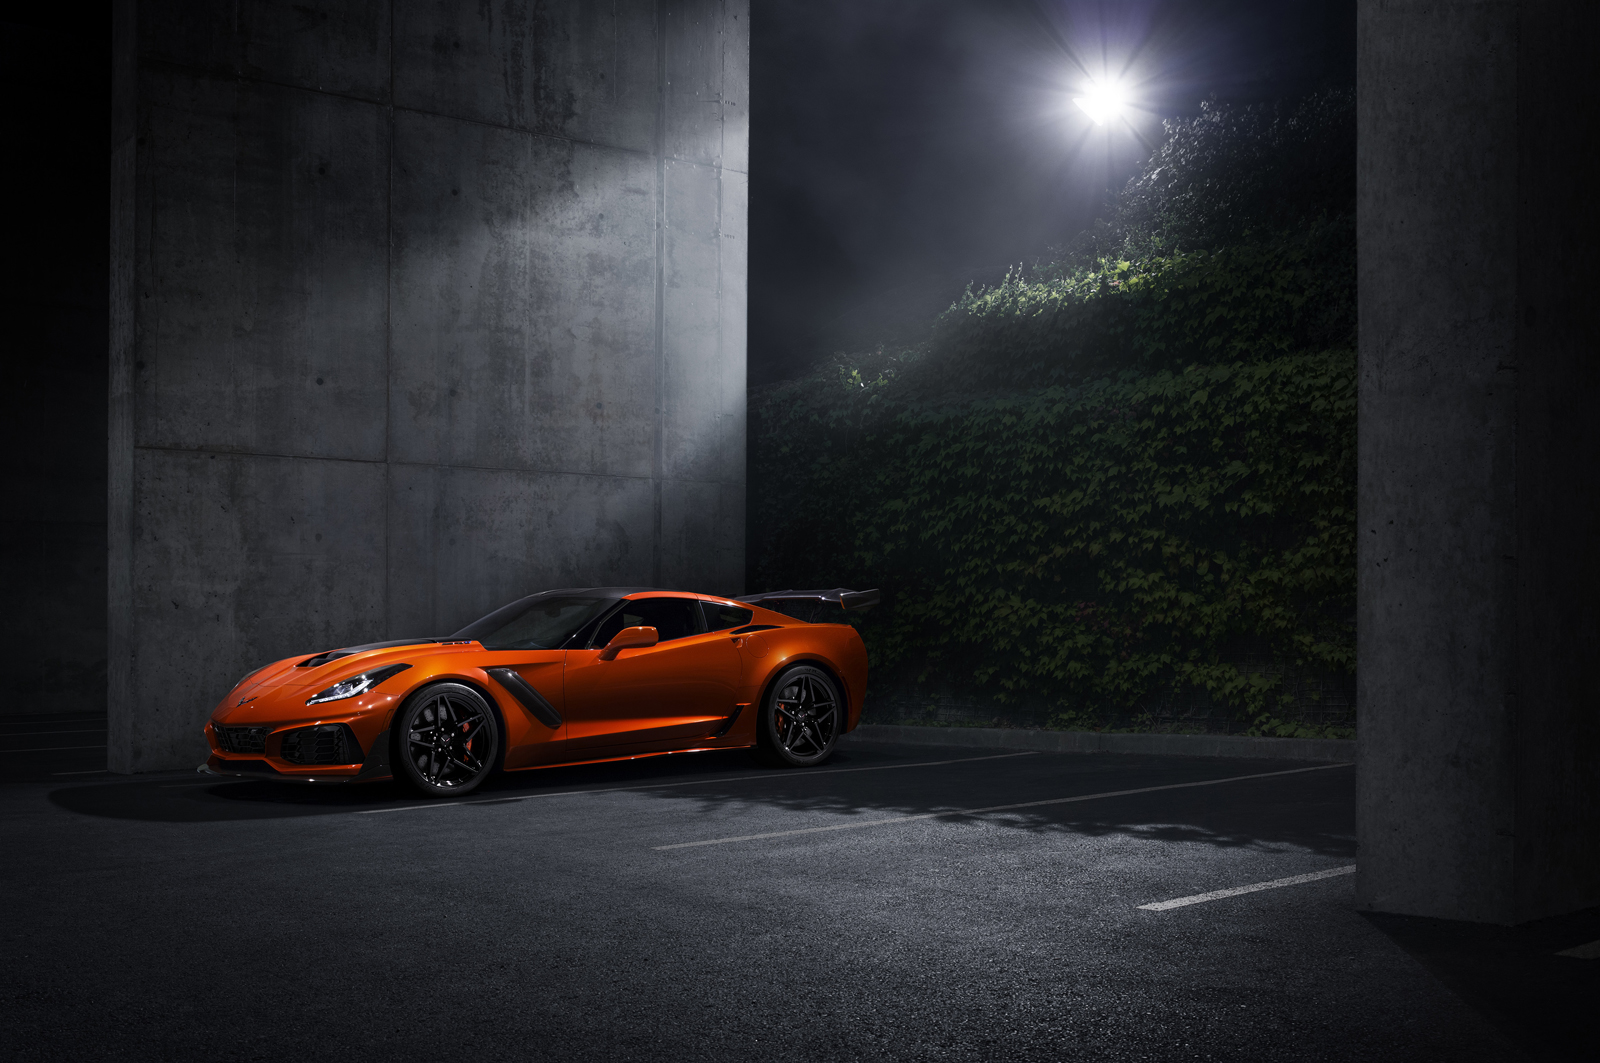 The Fastest Most Ful Production Corvette Ever 755 Horse 2019 Zr1